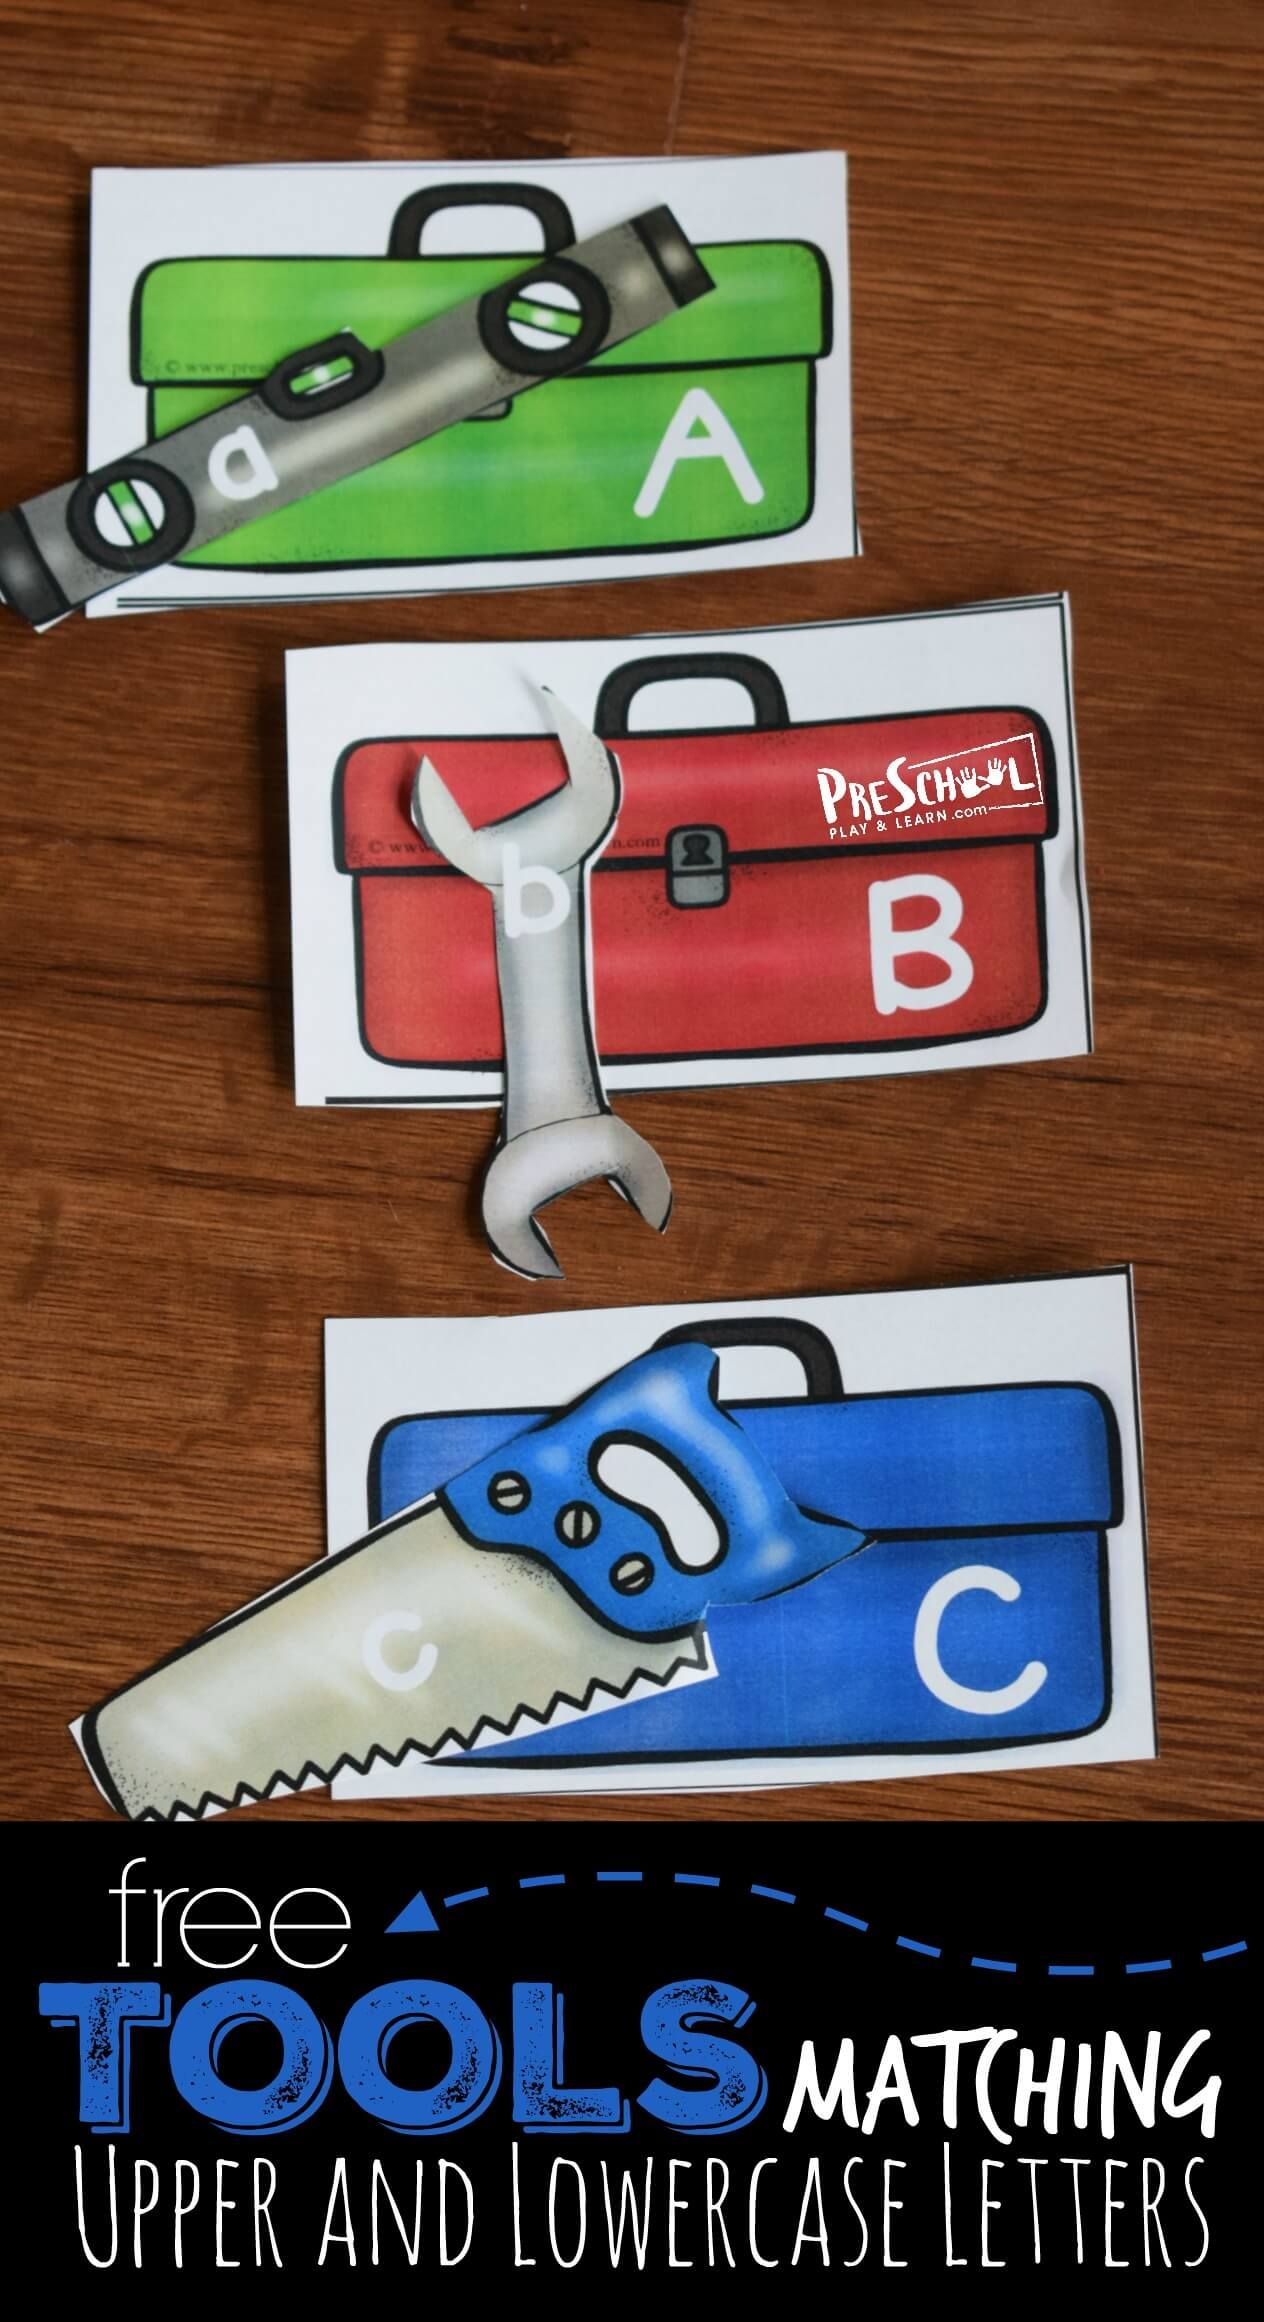 Free Tools Upper And Lowercase Letters Matching